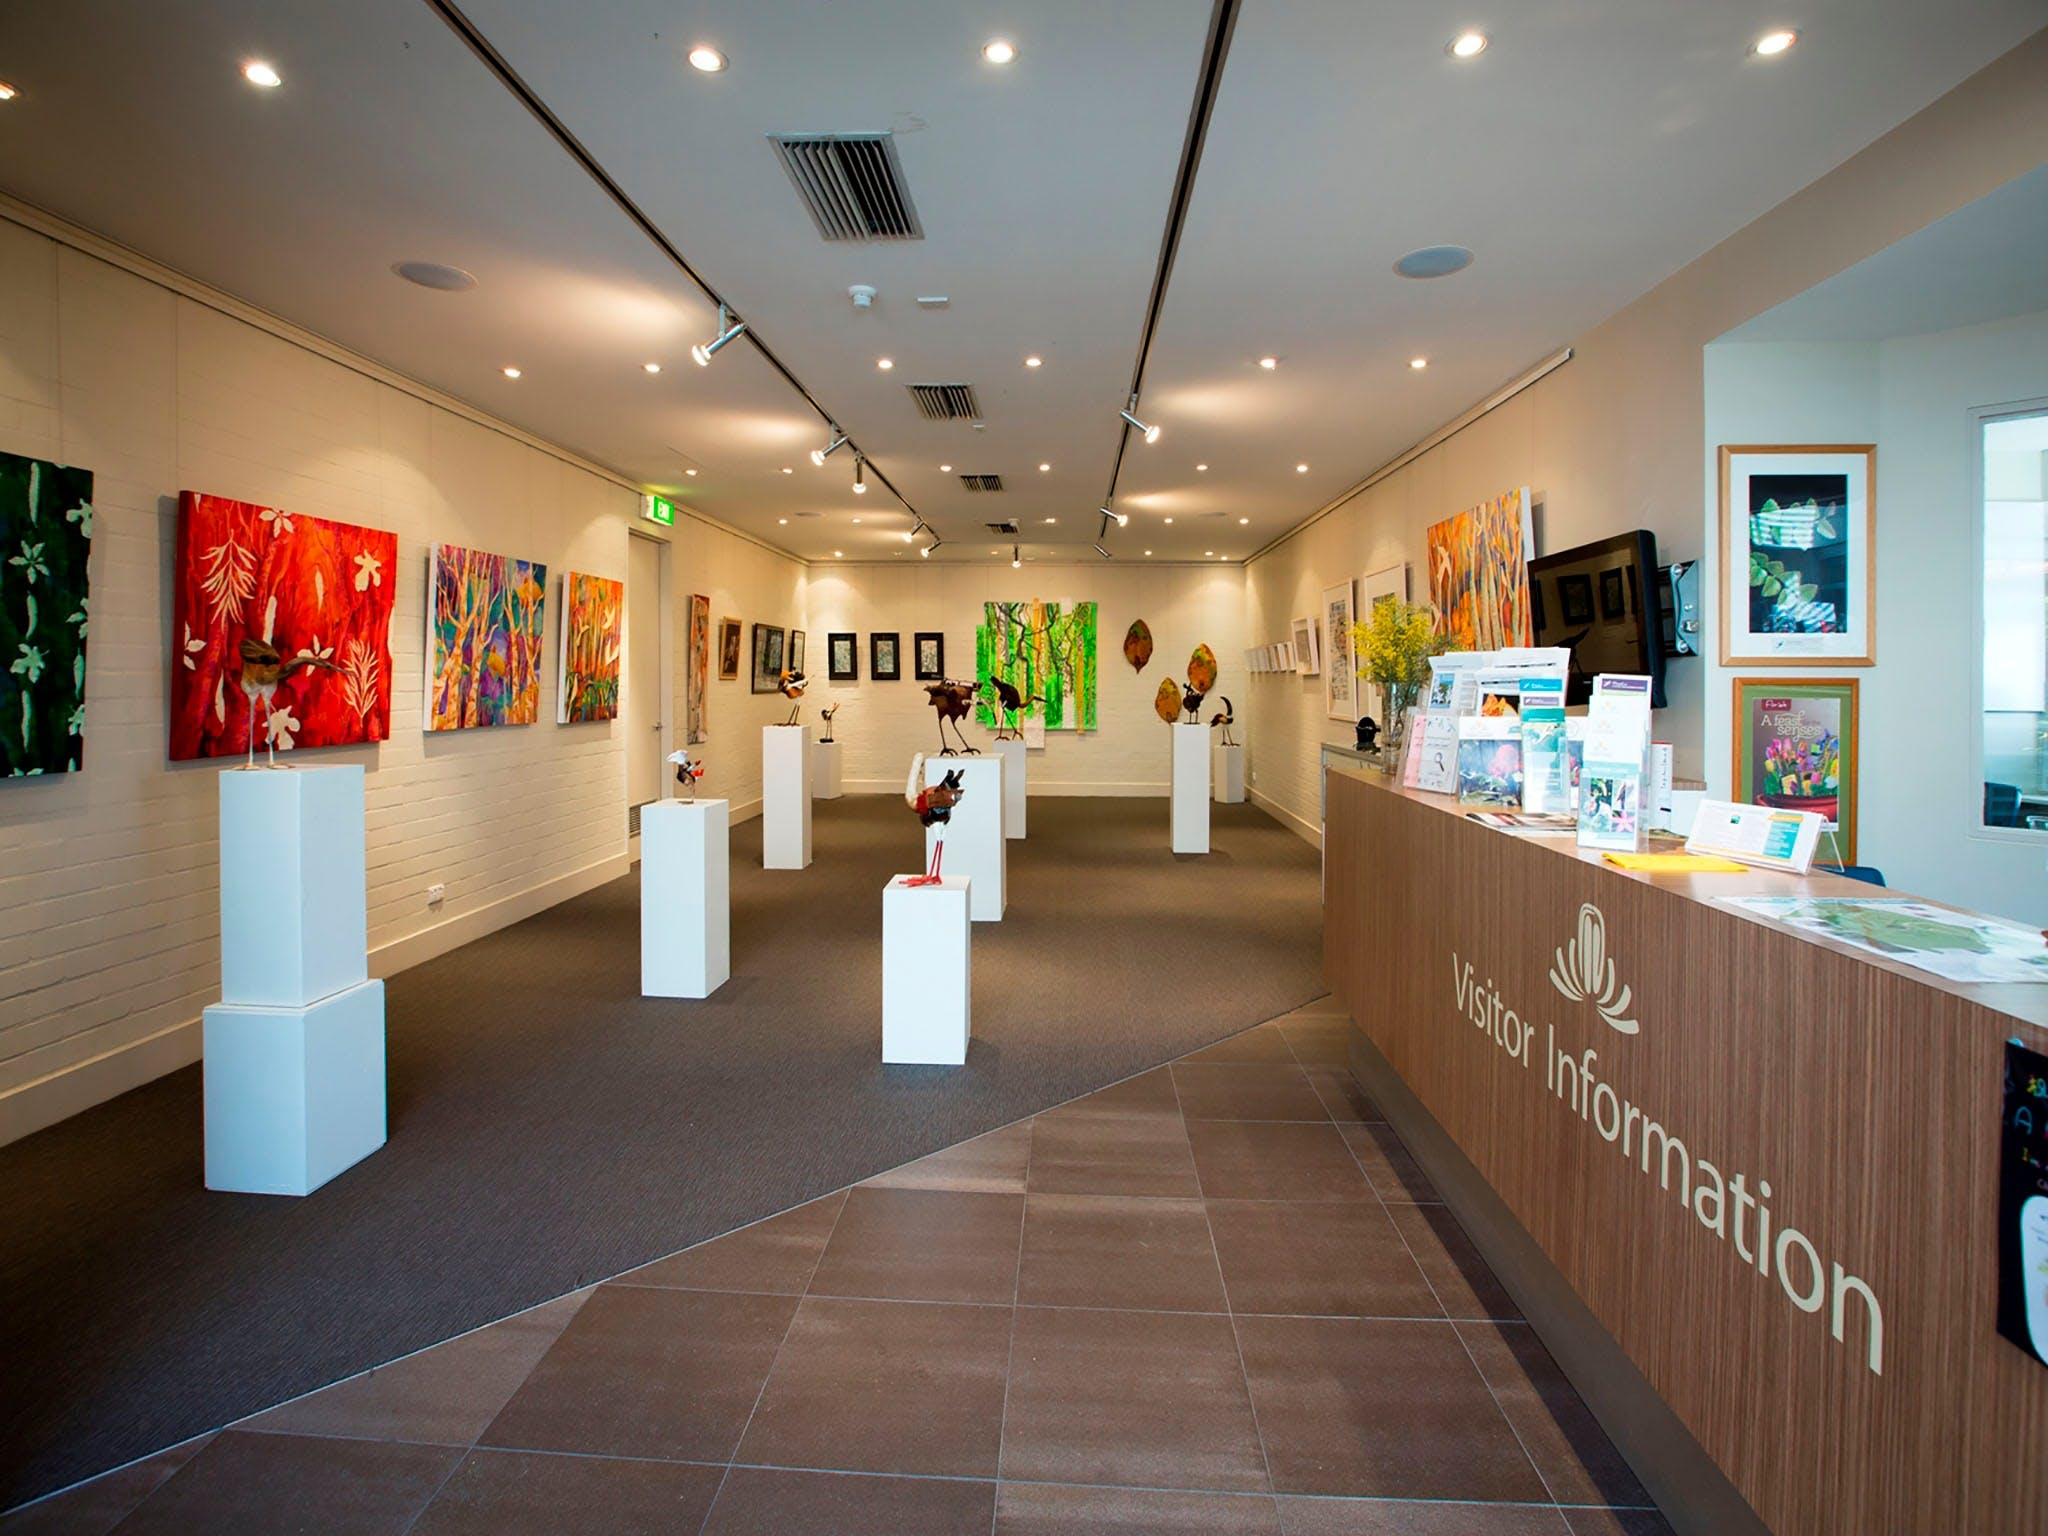 Australian National Botanic Gardens Visitor Centre Gallery - Accommodation Resorts